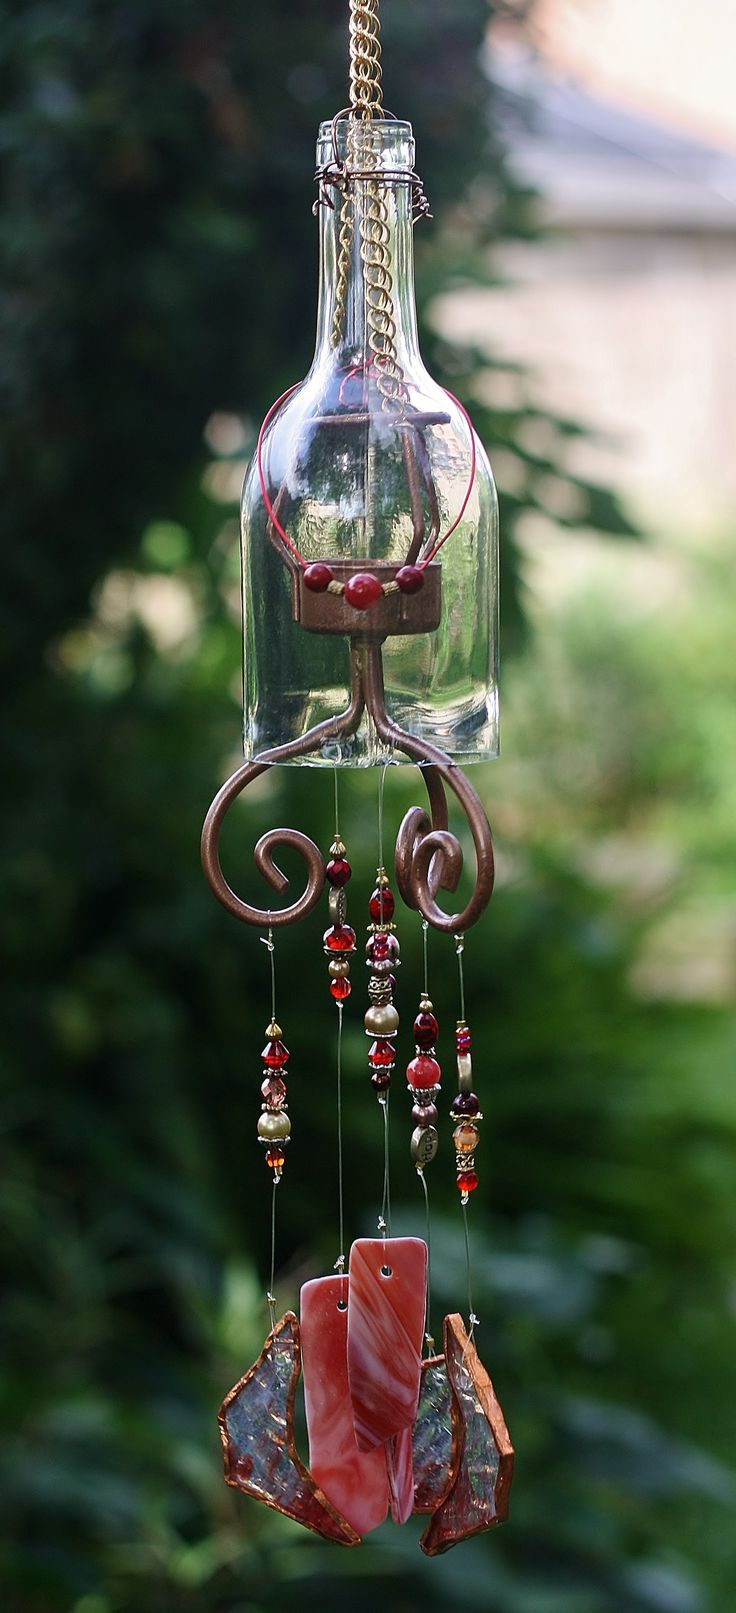 """Razzle Dazzle"" - One of a kind stained glass wine bottle wind chime!"